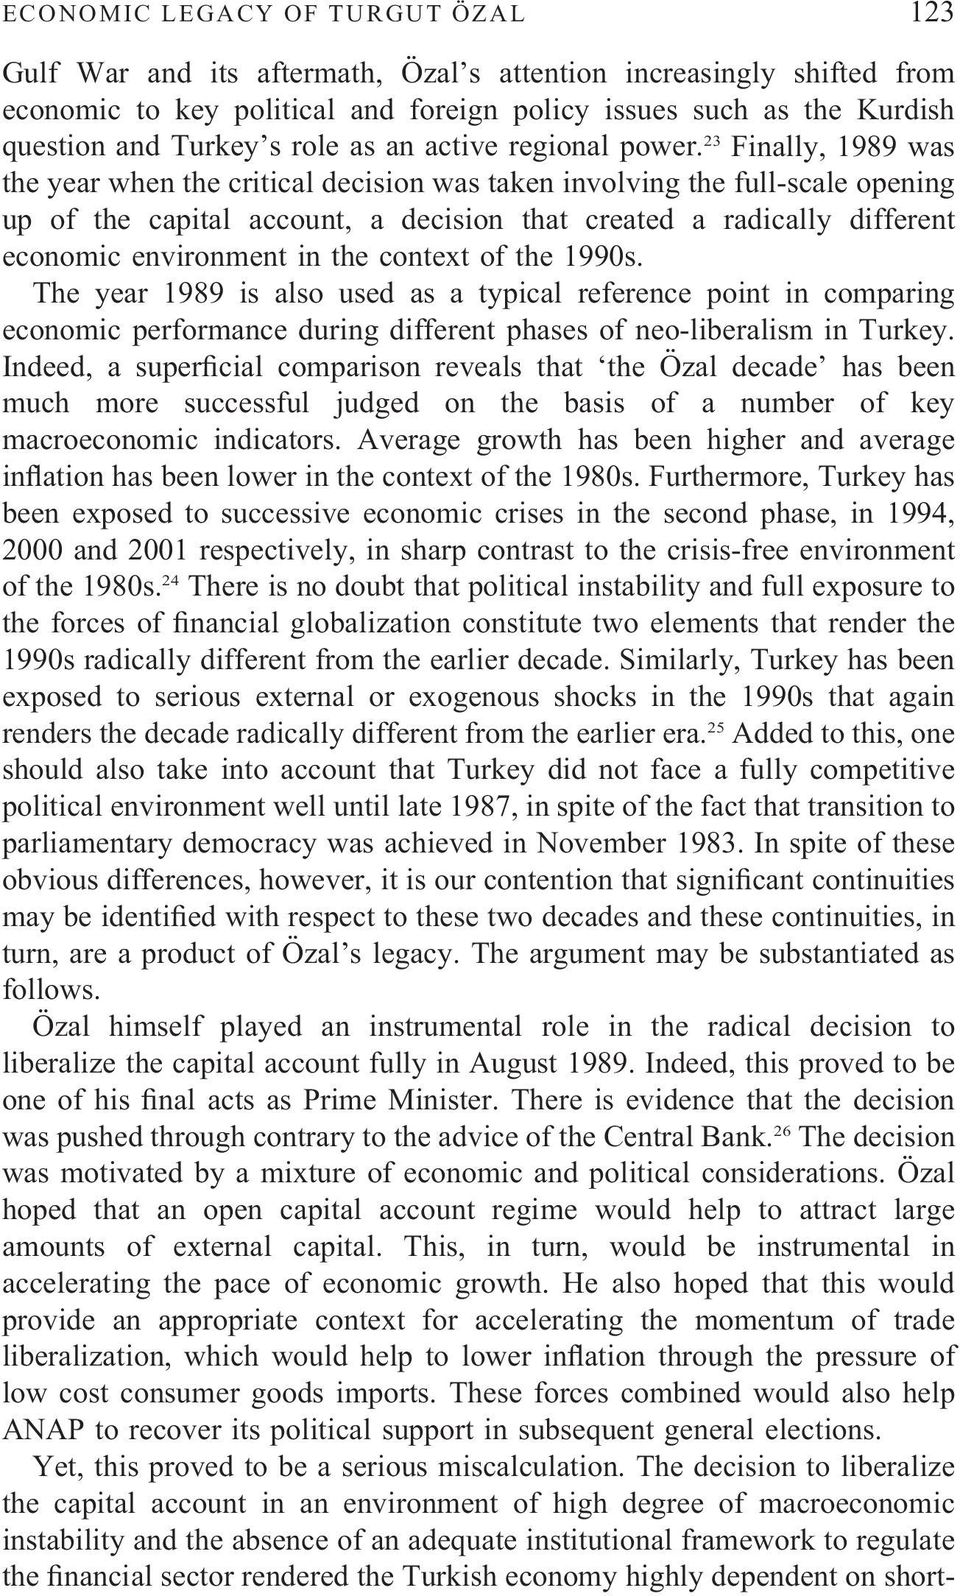 23 Finally, 1989 was the year when the critical decision was taken involving the full-scale opening up of the capital account, a decision that created a radically different economic environment in